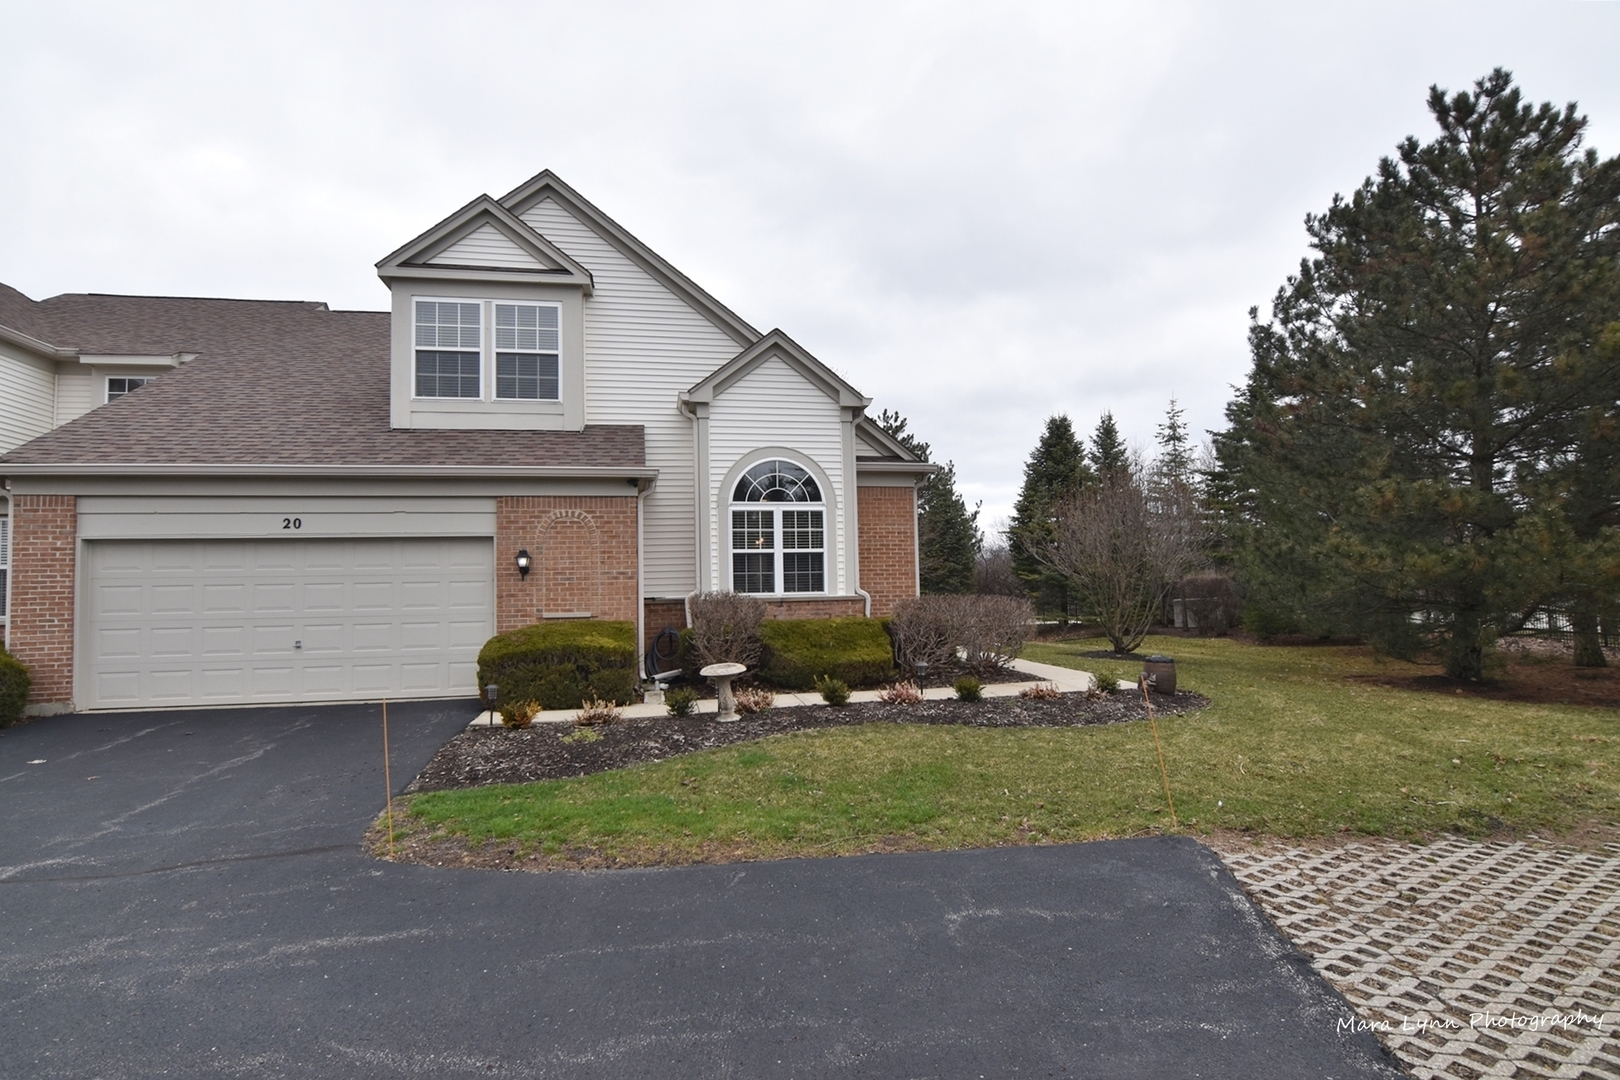 Photo for 20 Waterfront Court, Algonquin, IL 60102 (MLS # 10683105)